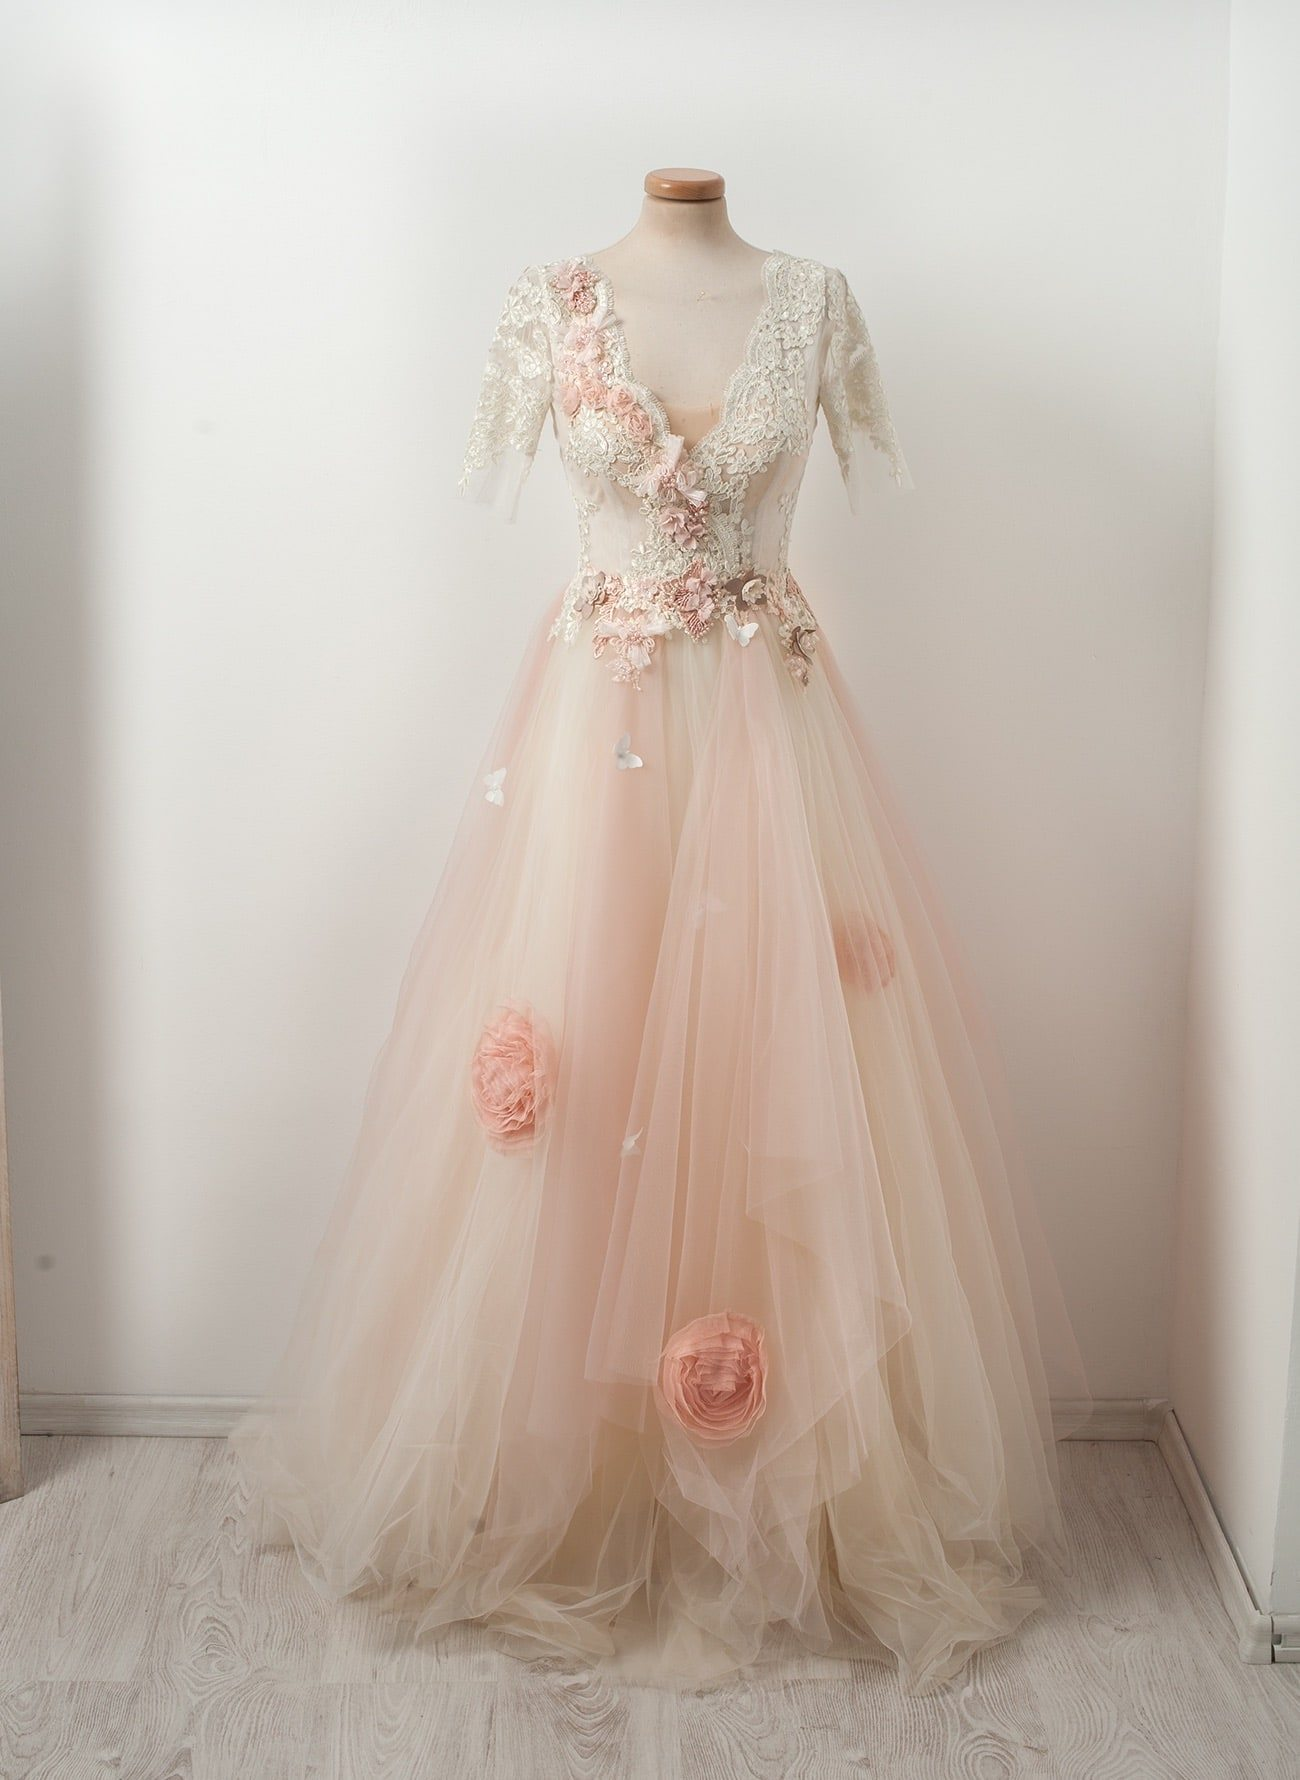 Chotronette's Meringue Cake dress with pale pink tulle and appliqued roses